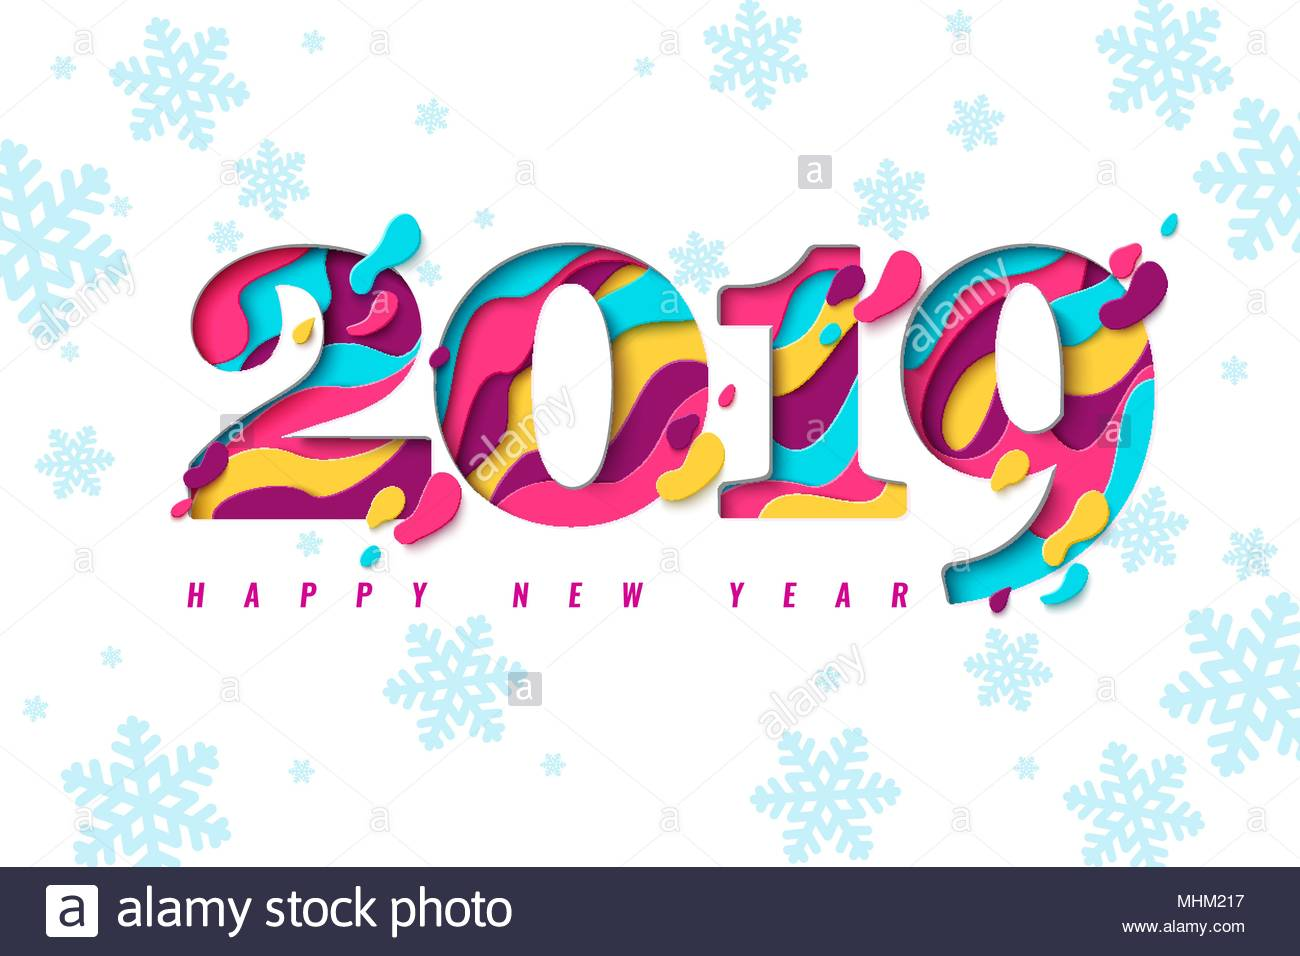 2019 Happy New Year paper craft holiday background with snowflakes ...